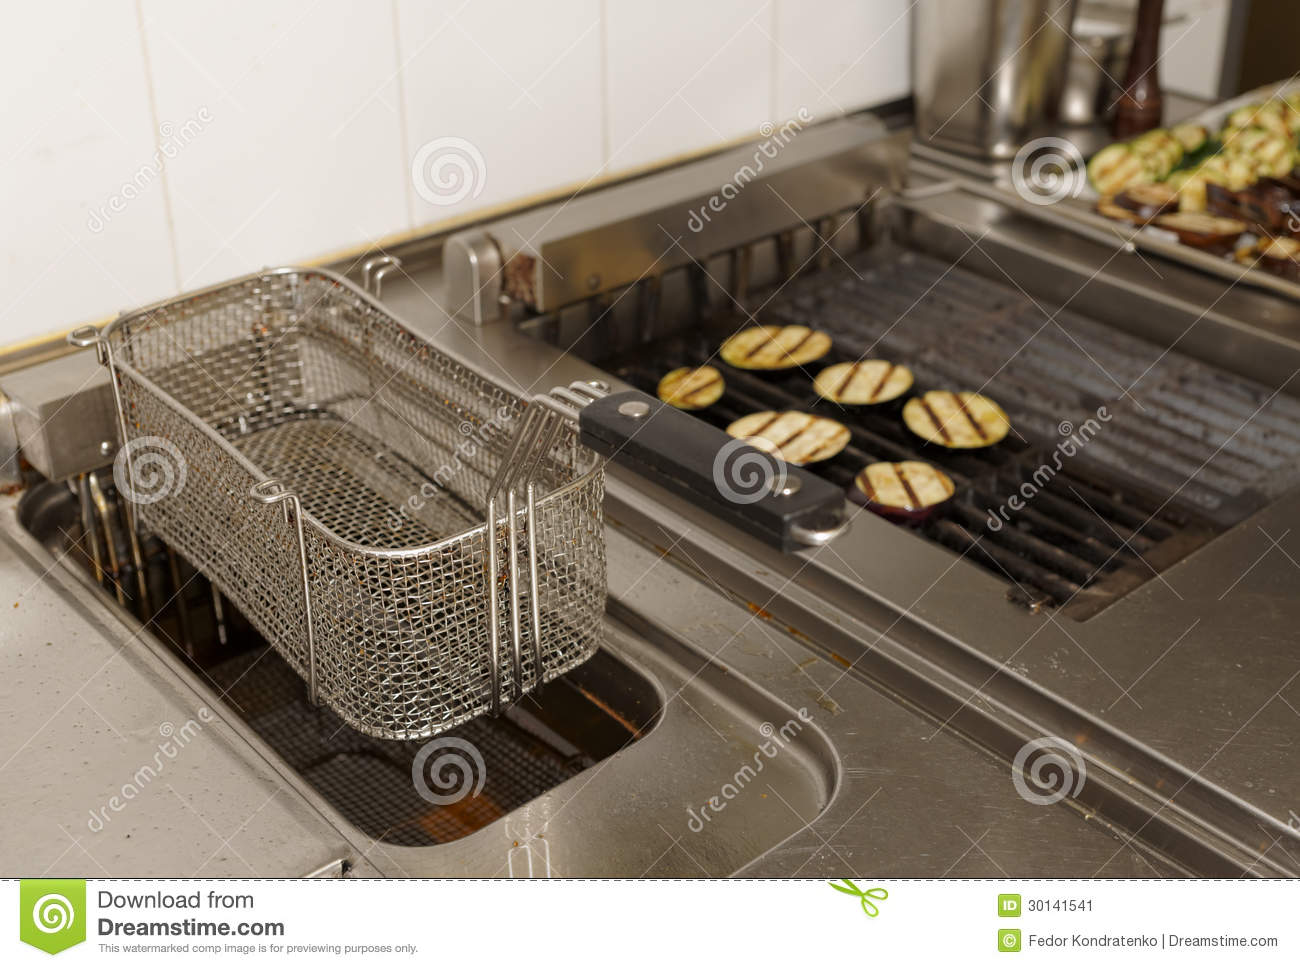 Deep Fryer And Grill On Commercial Kitchen Stock Image - Image of ...